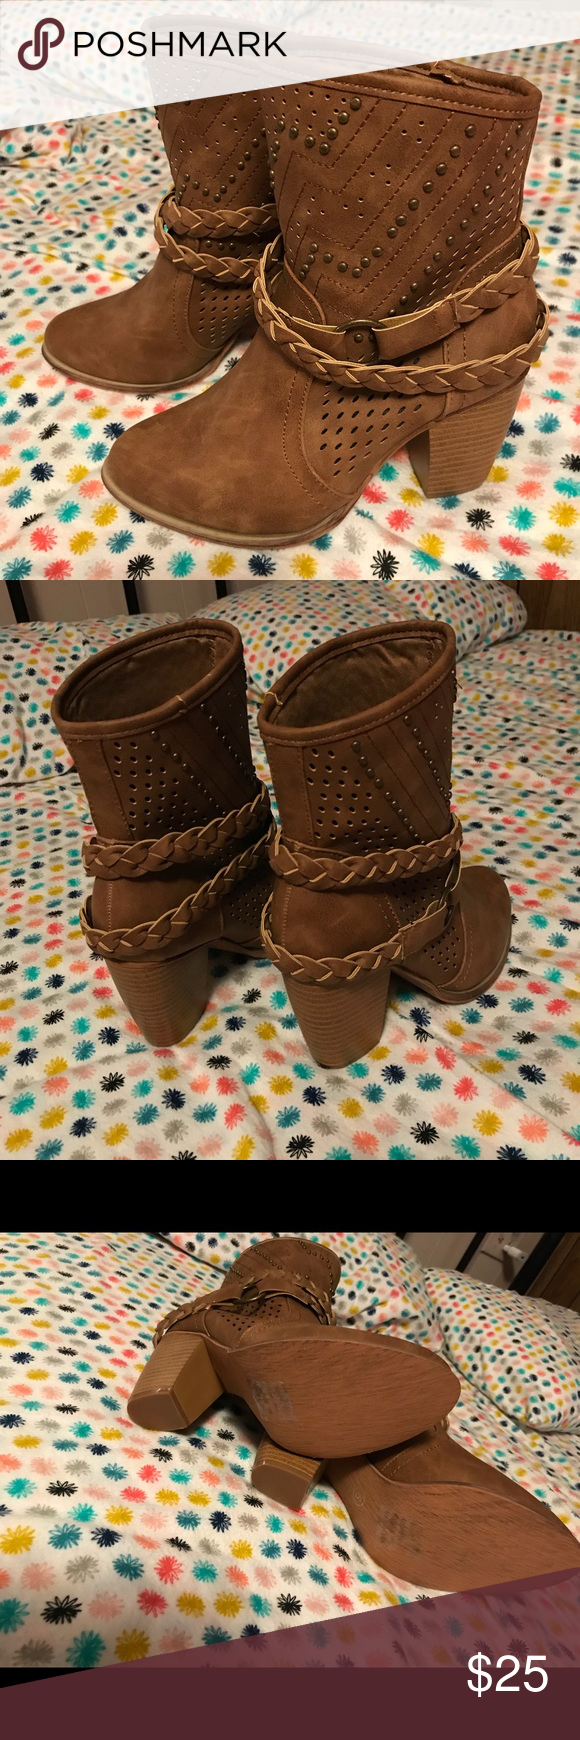 Tan Boots Olivia Miller Size 6 Never Been Worn Flash  Sneakers Delivery